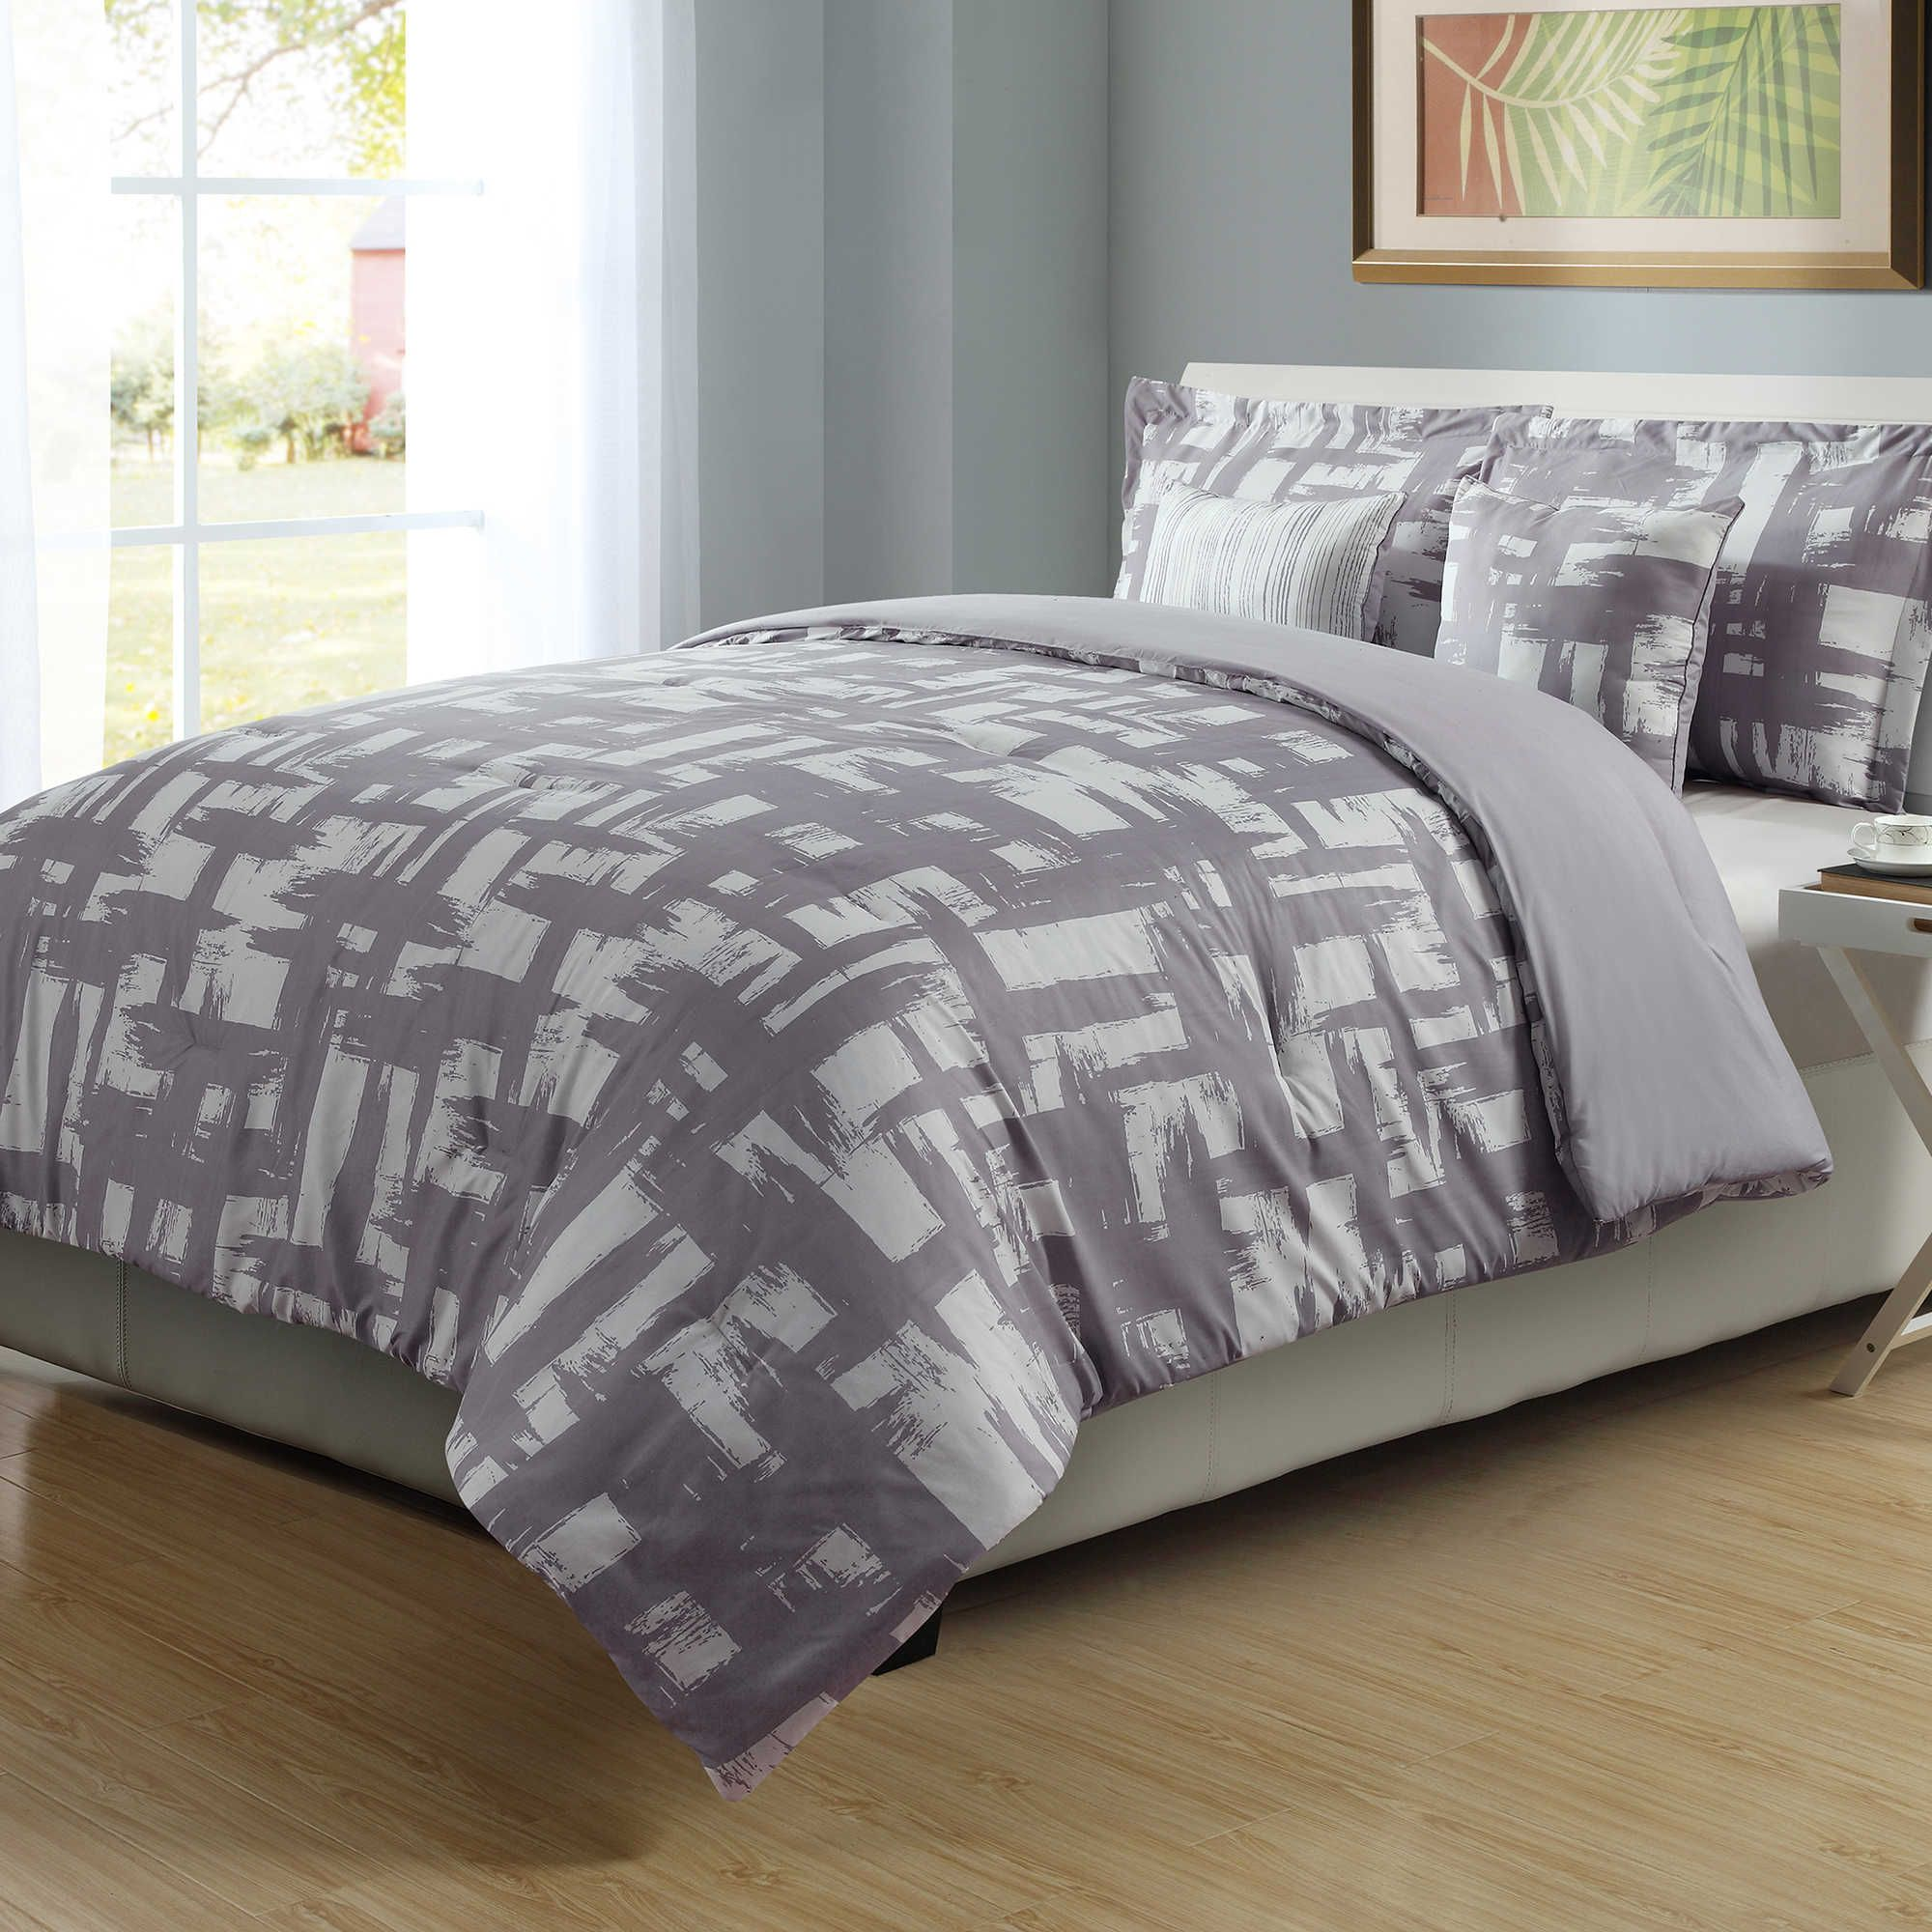 4 Piece Full Queen Check Comforter Set In Lilac White Comforter